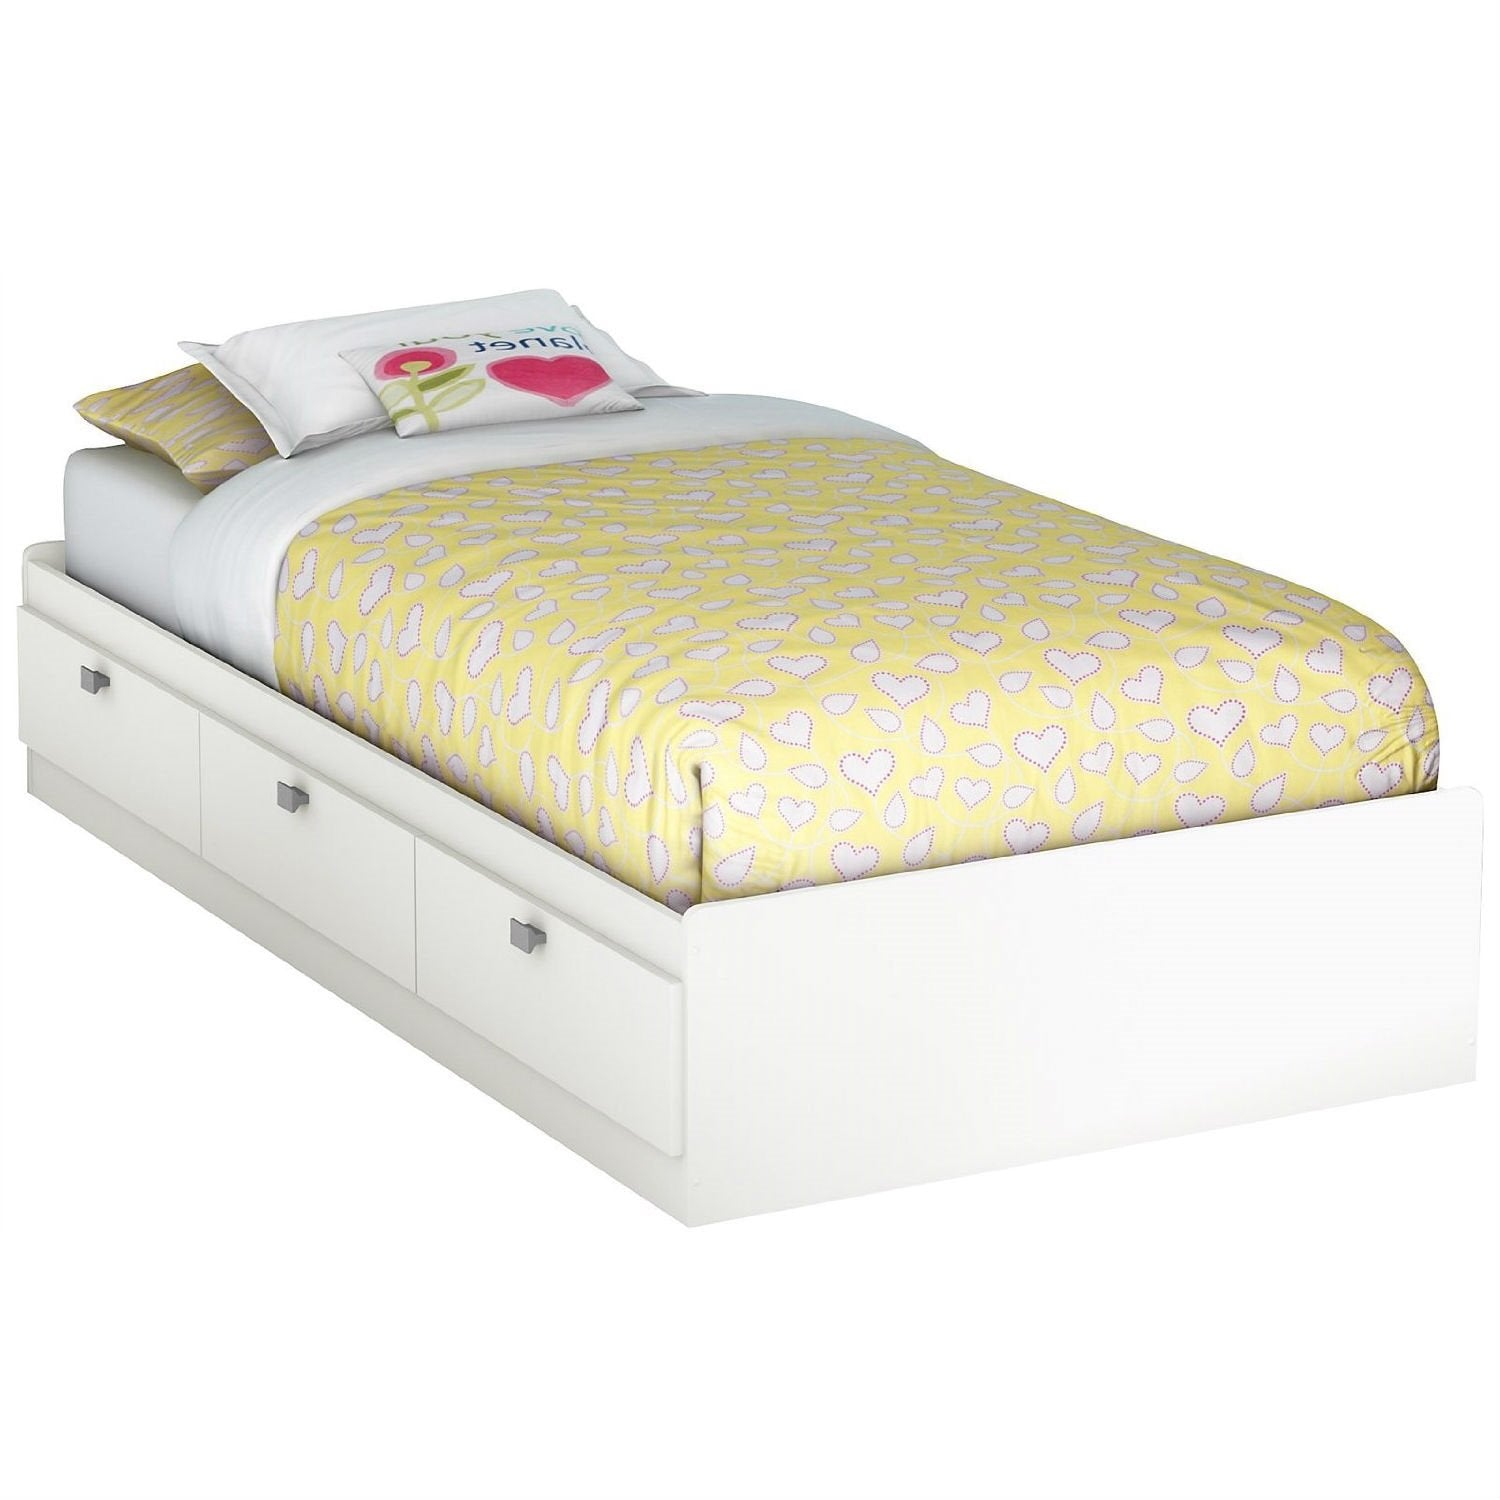 Twin size White Platform Bed for Kids Teens Adults with 3 Storage Drawers